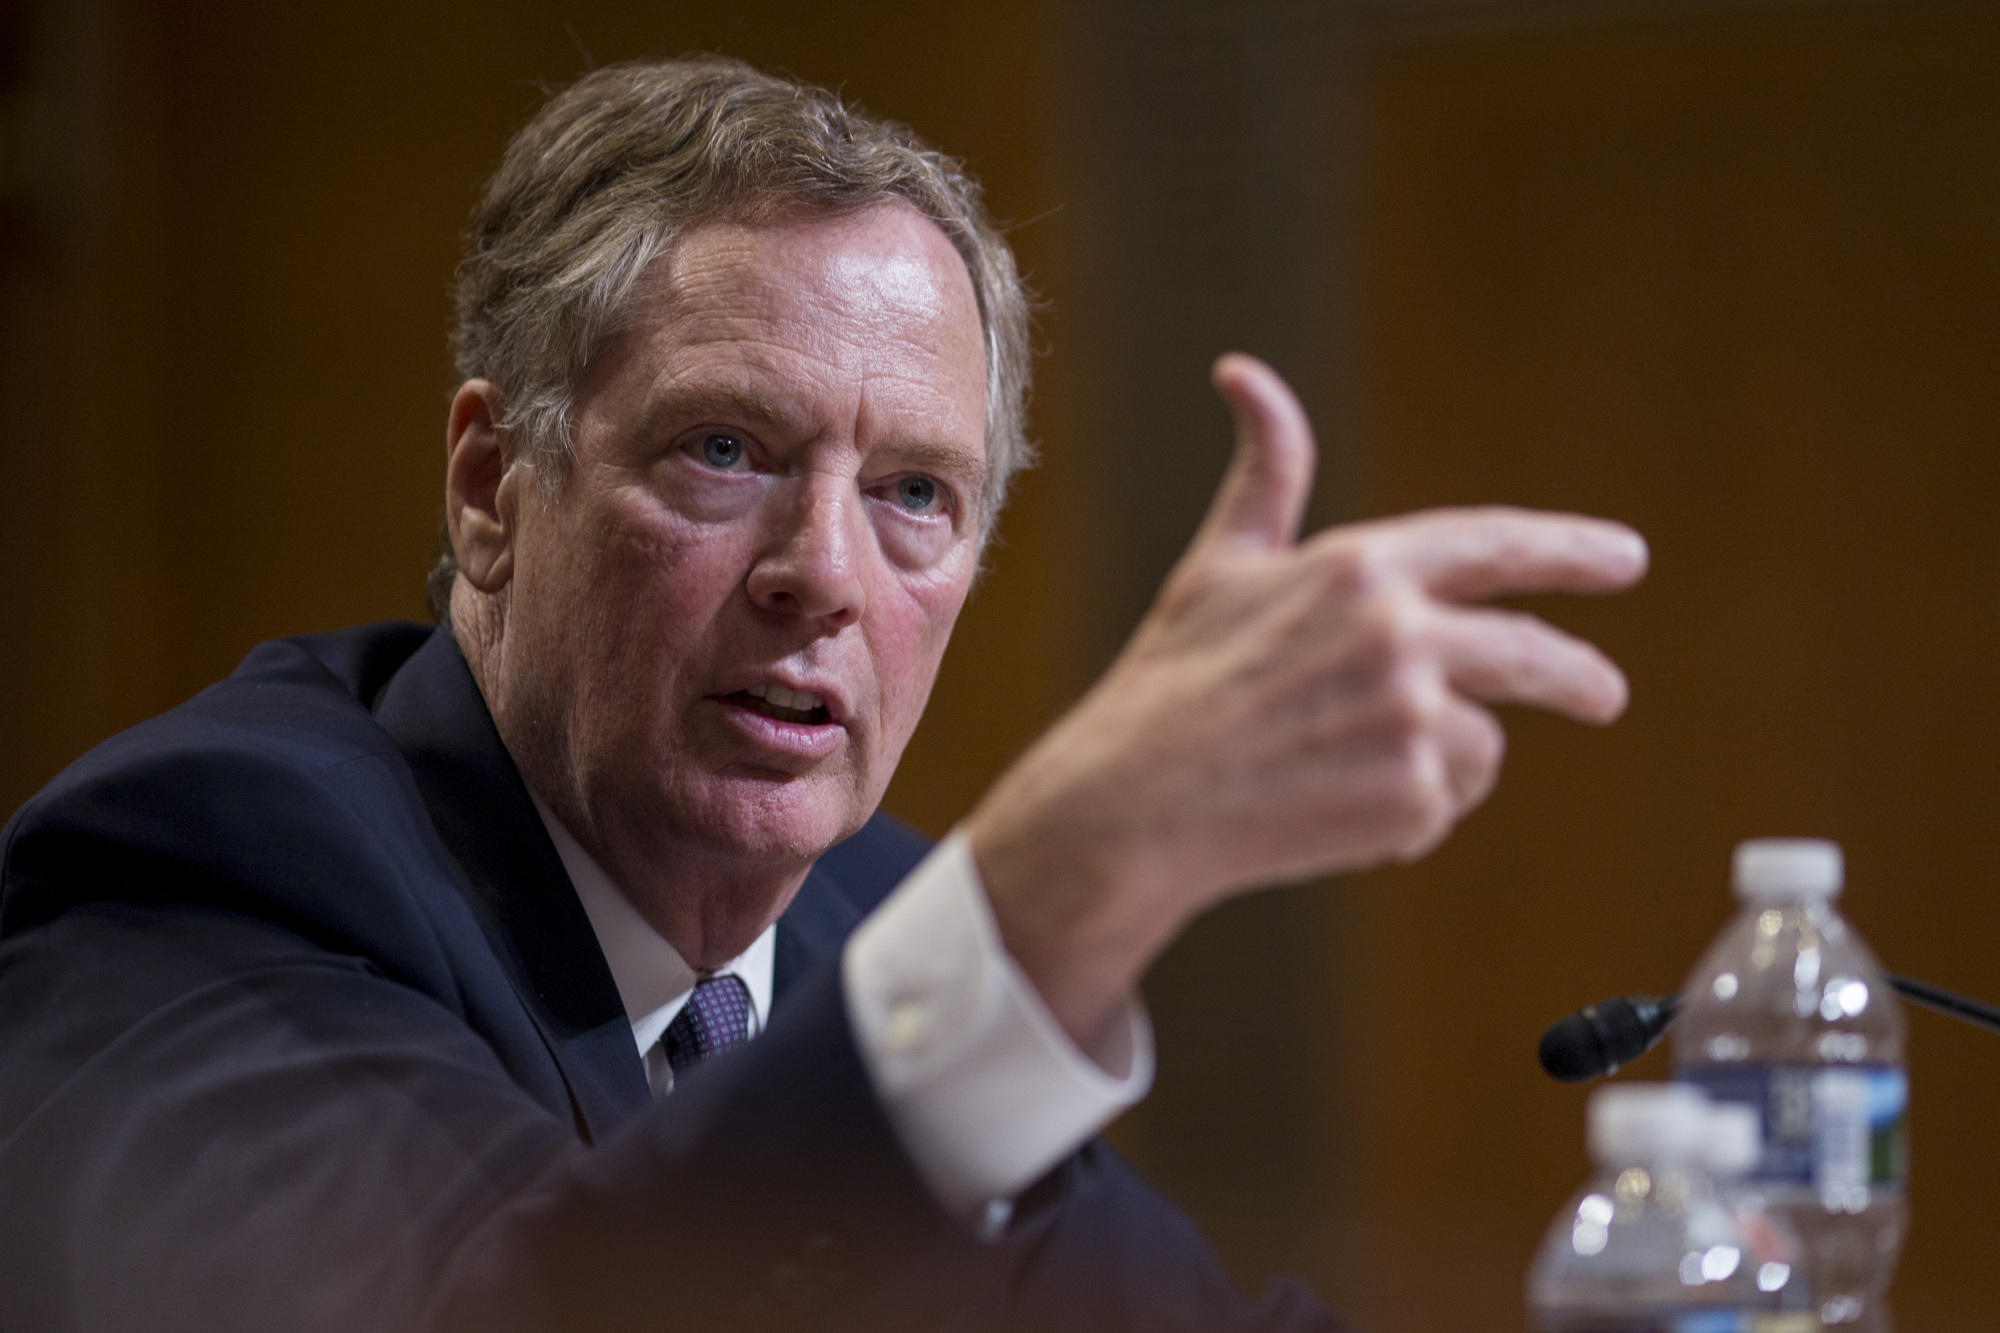 Robert Lighthizer, the U.S. trade representative, is likely to press Toshimitsu Motegi, Japan's economic revitalization minister, to reduce Japanese tariffs on agricultural imports during their talks in Washington on Thursday.   BLOOMBERG